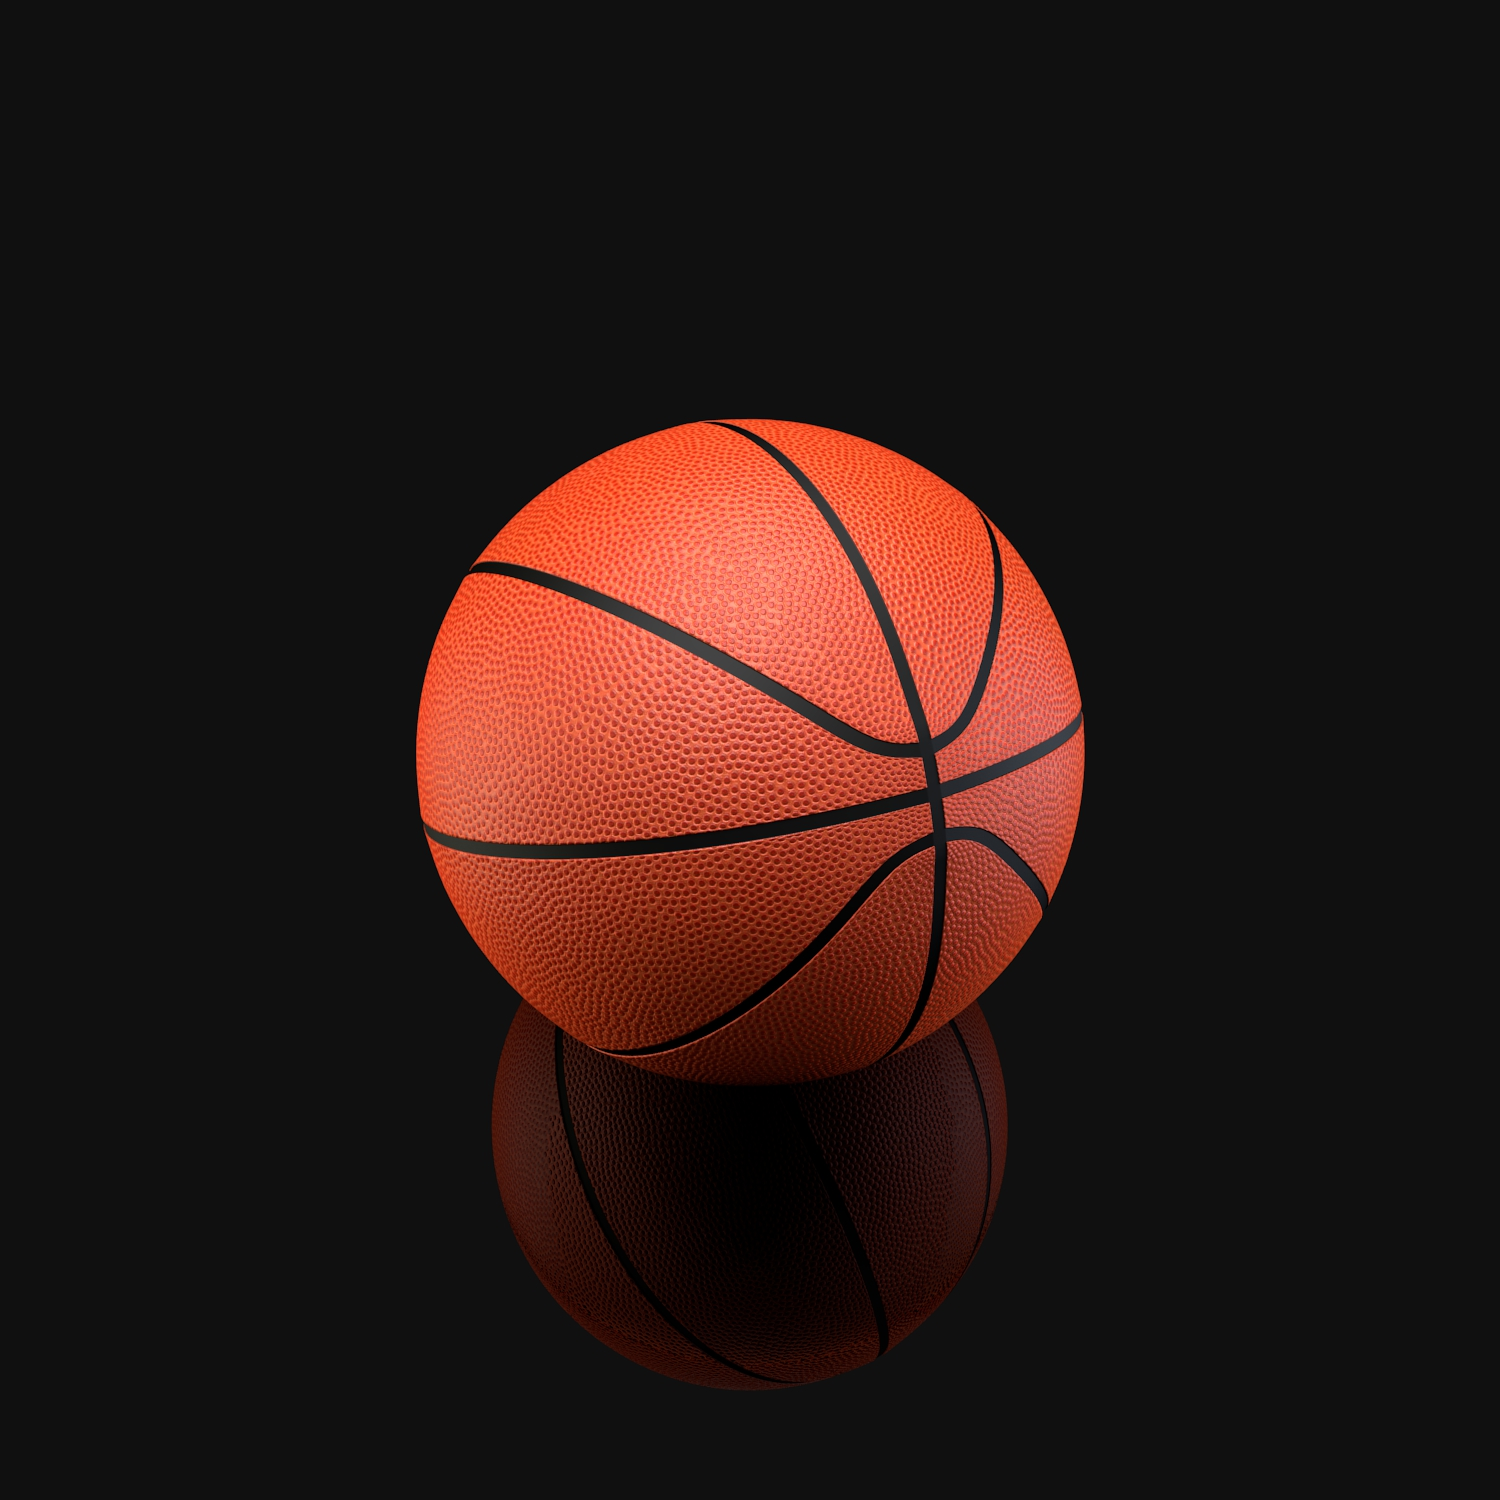 basketball ball 3d model blend obj 118930